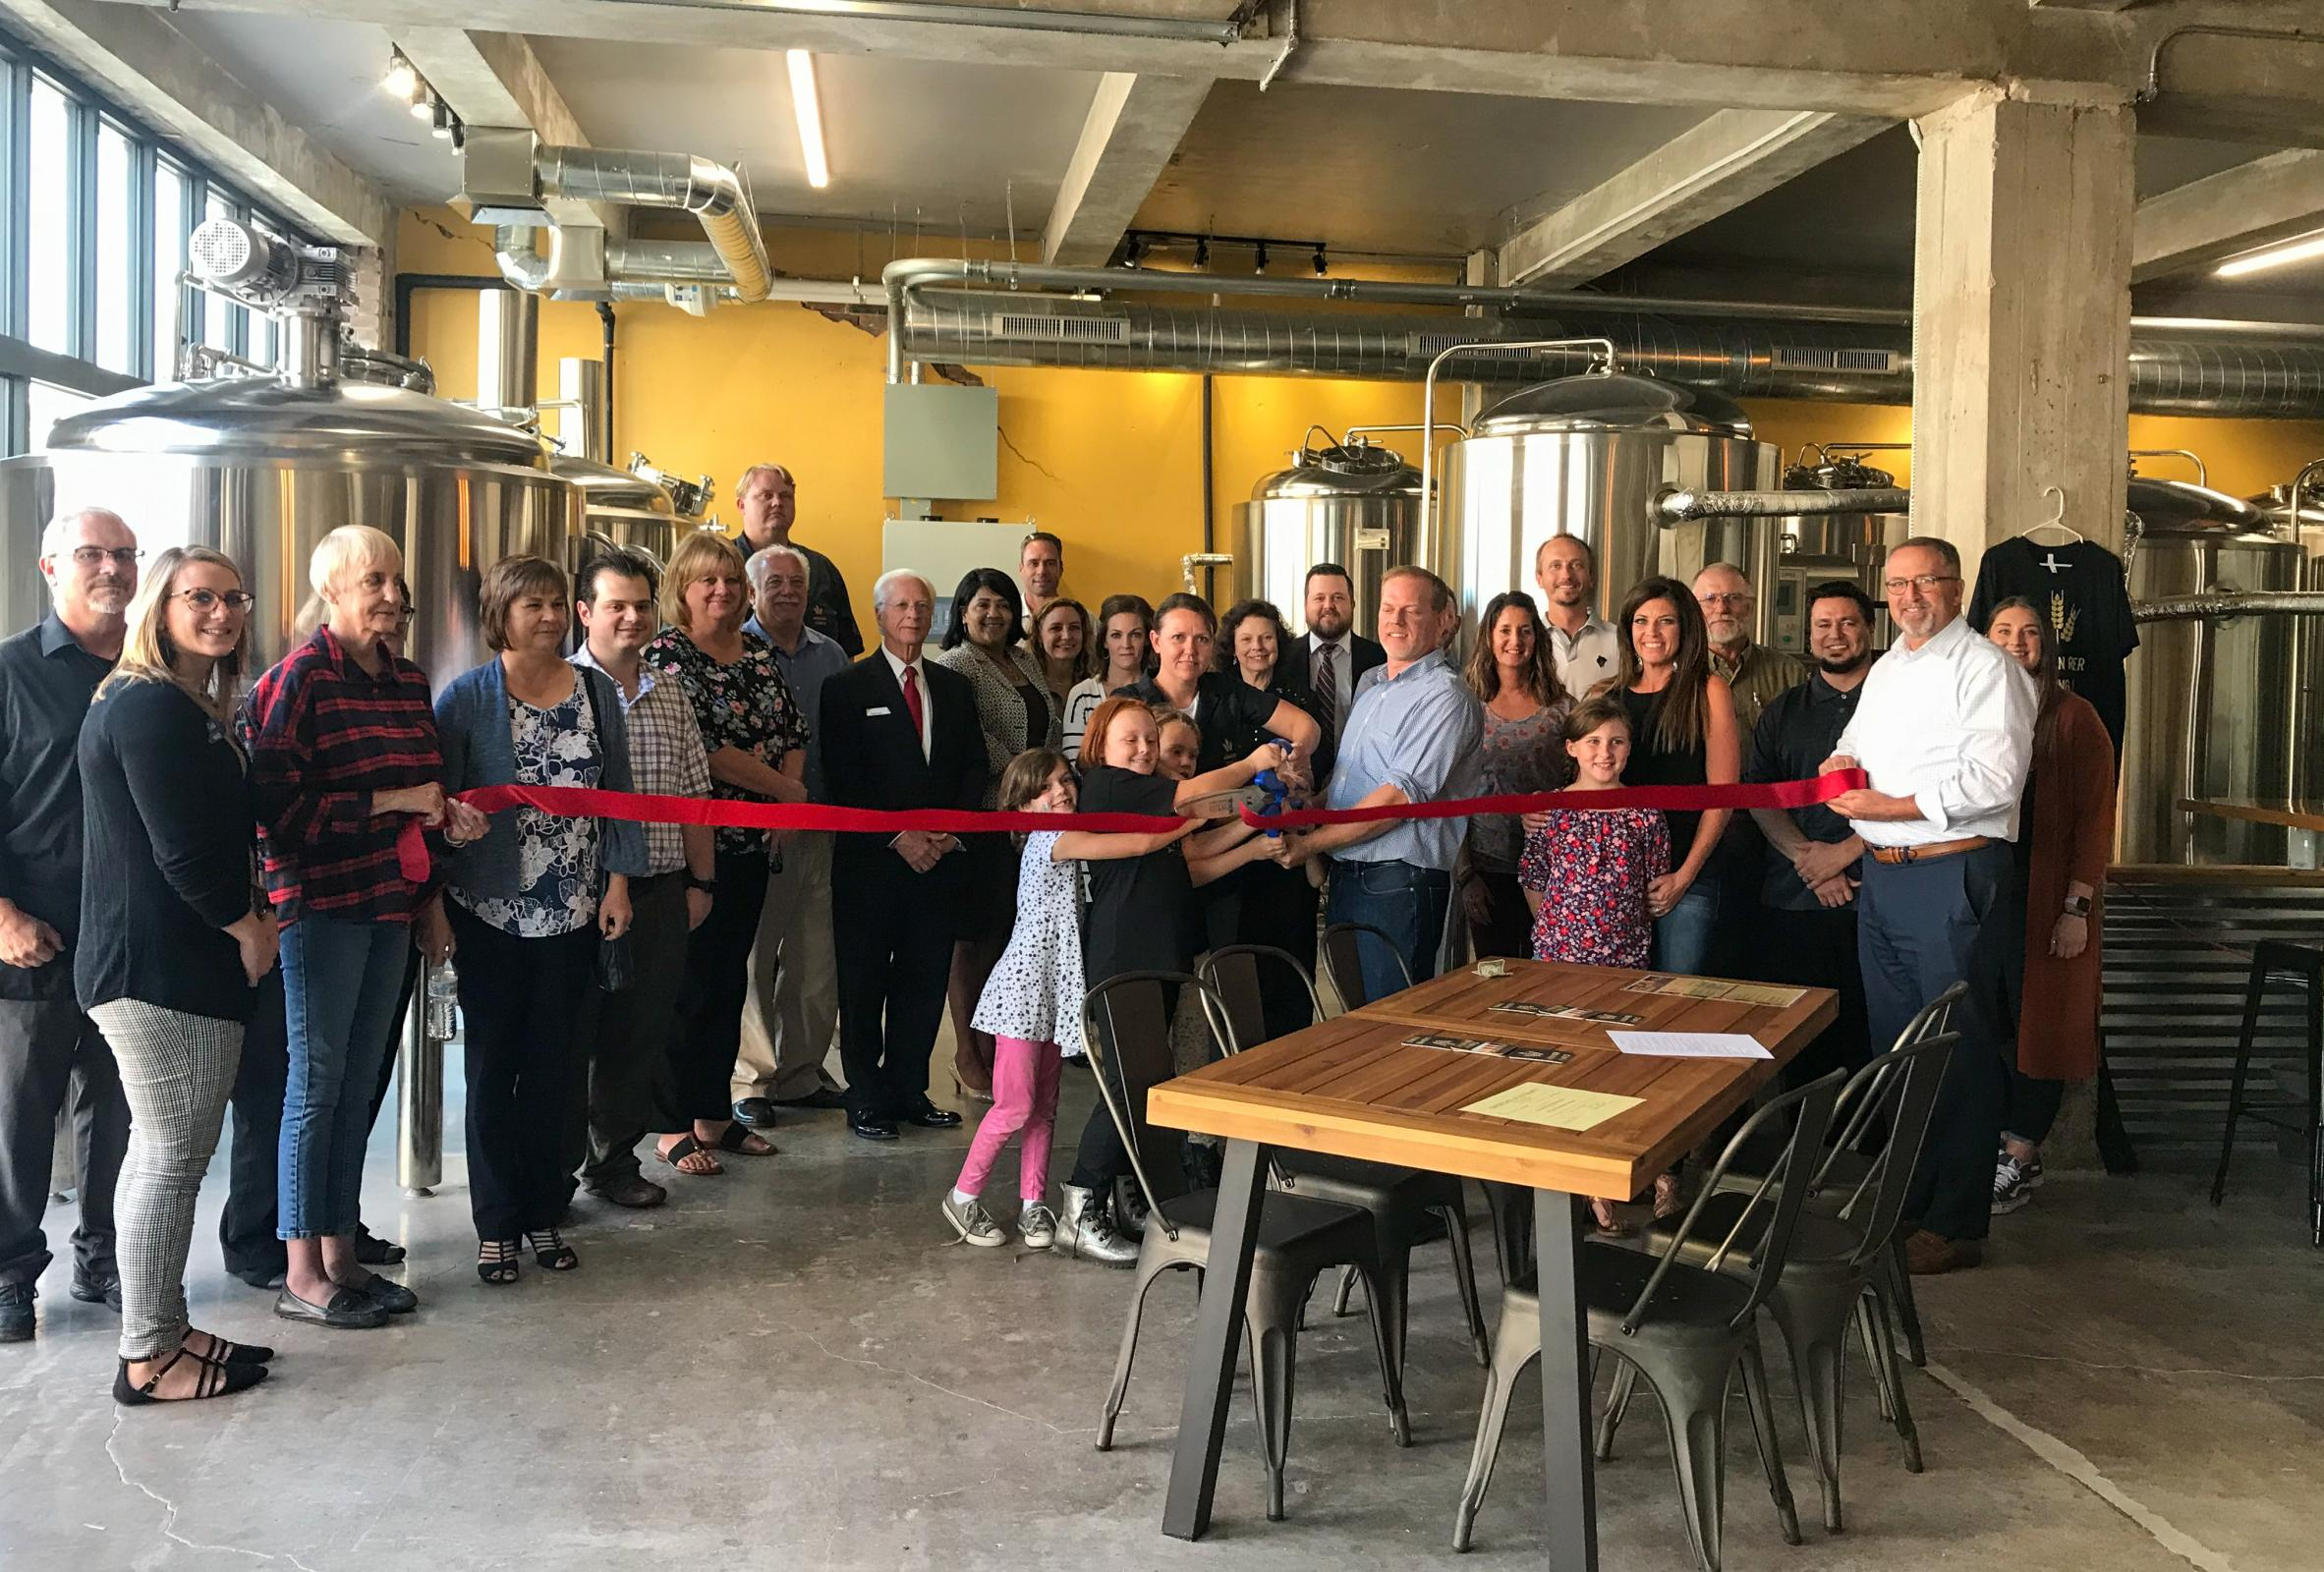 2019 Canadian River Brewing Co. Ribbon Cutting Image